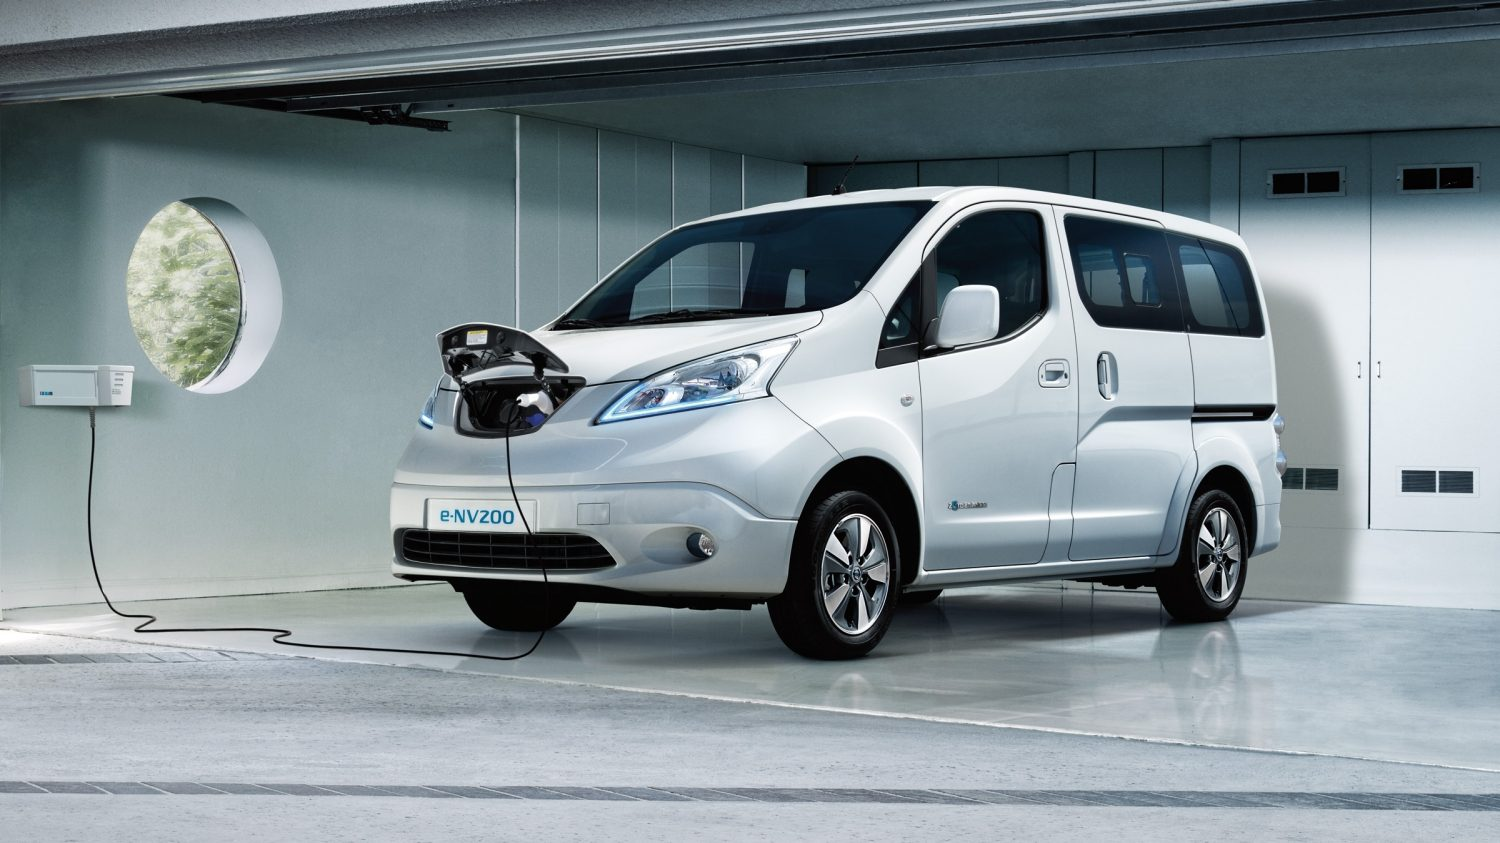 autonomia batteria nissan e nv200 evalia monovolume nissan. Black Bedroom Furniture Sets. Home Design Ideas